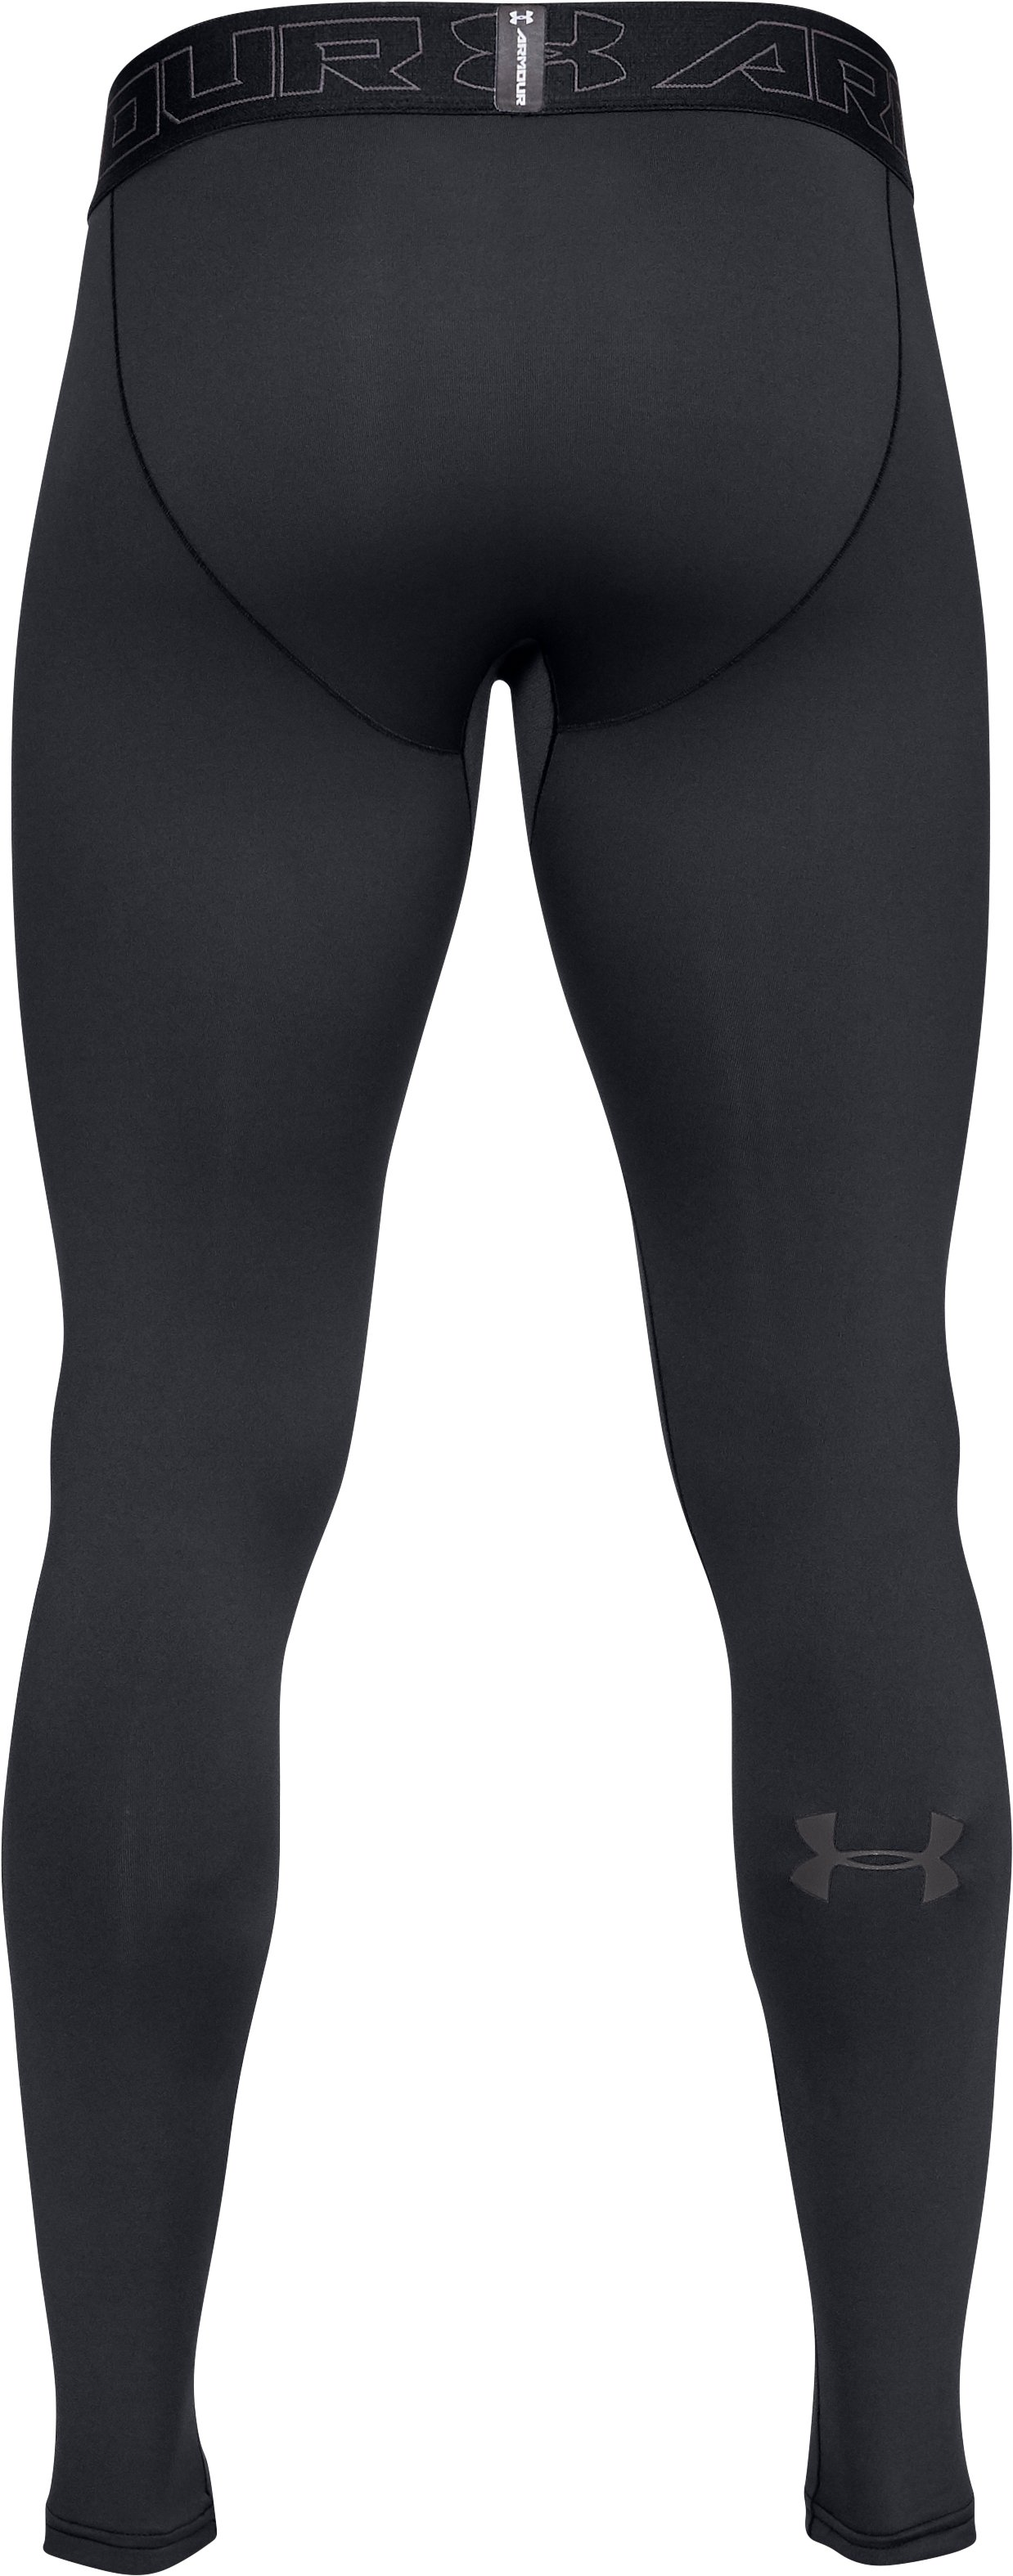 Men's ColdGear® Leggings, Black ,